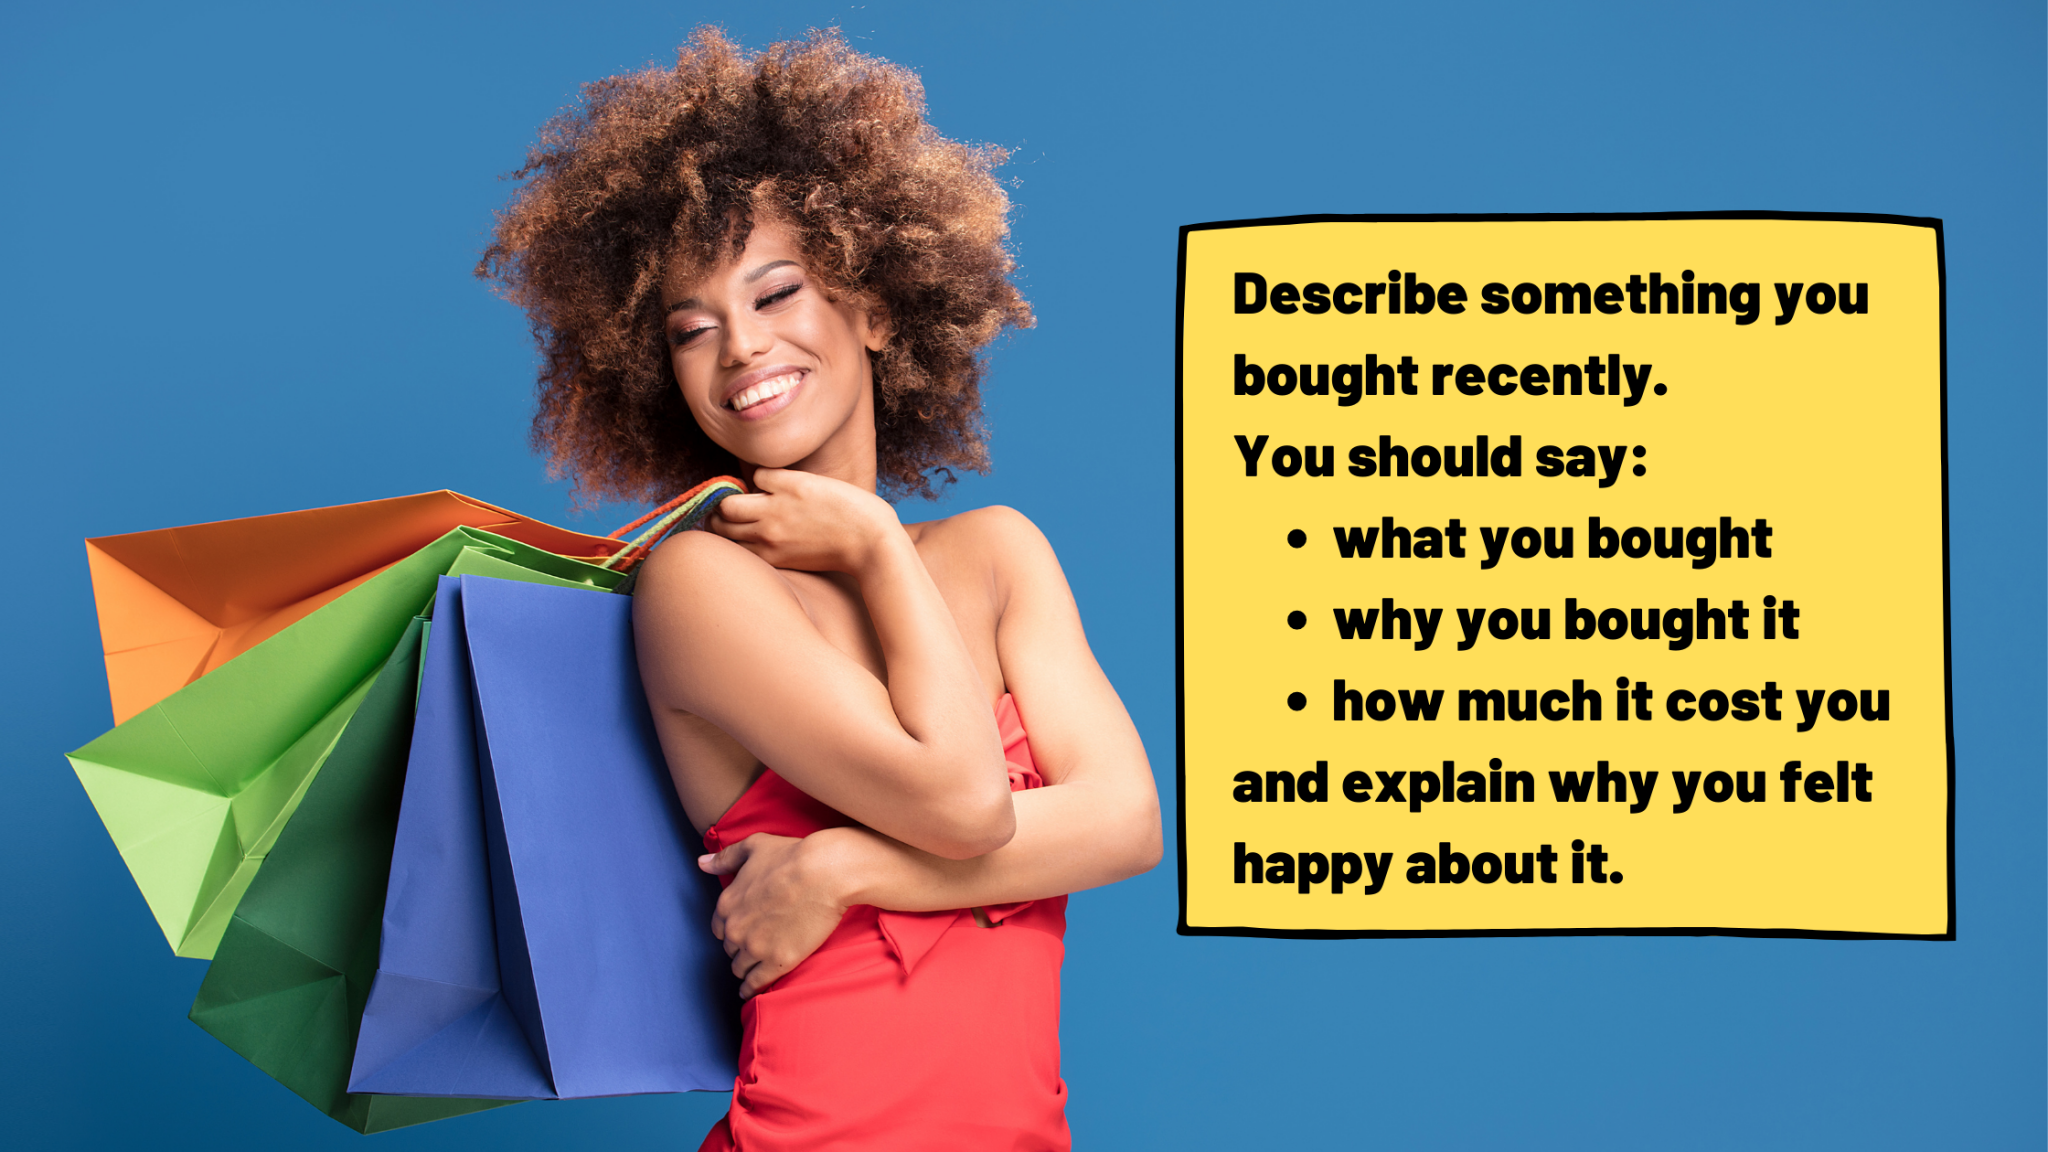 describing something you bought that makes you happy